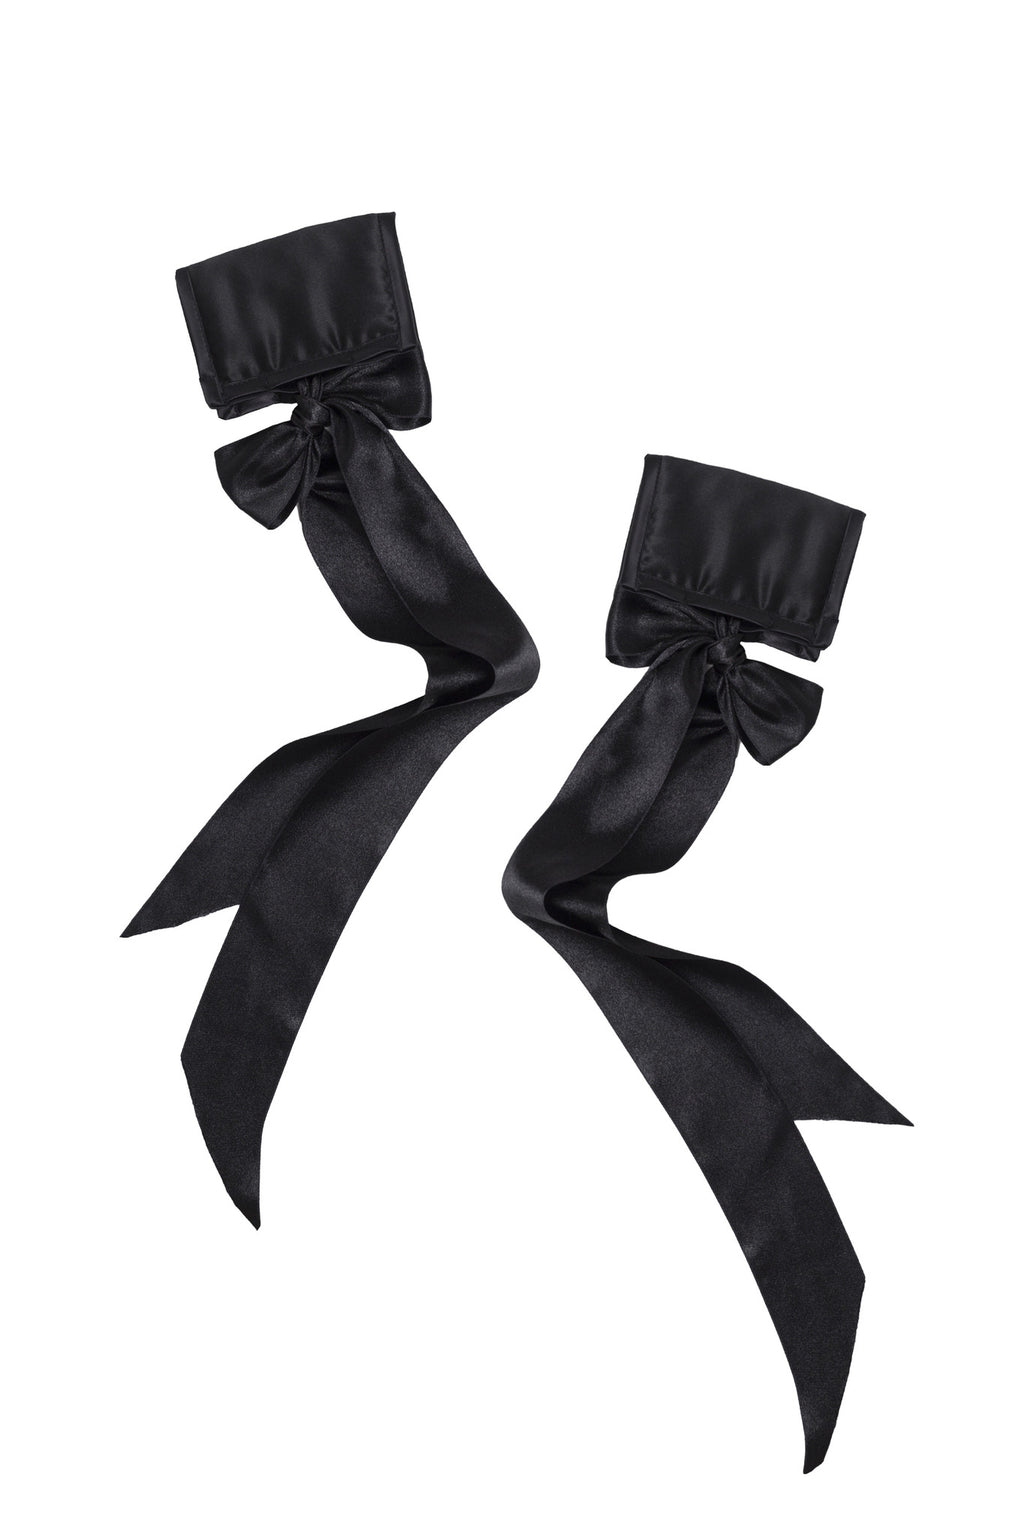 Classic Silk Black Cuffs - Handmade by Ayten Gasson